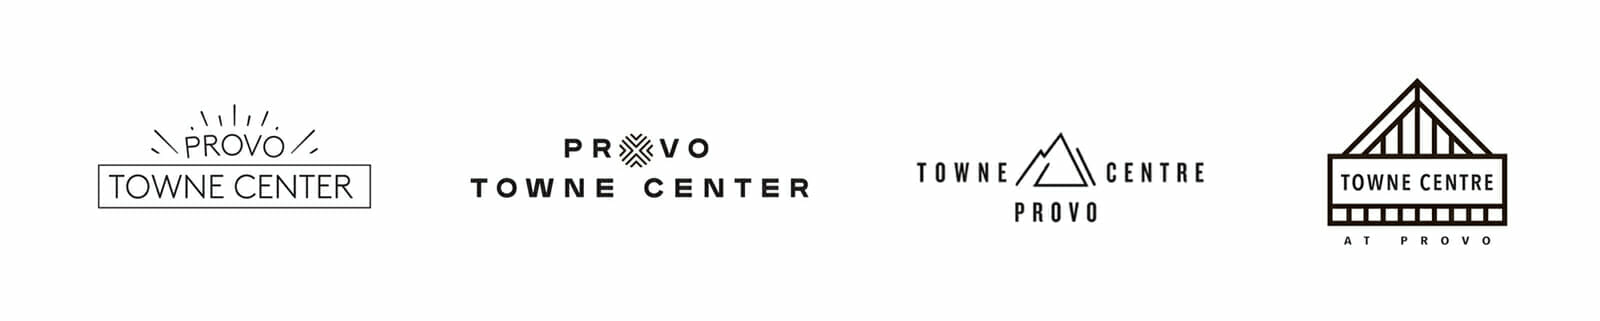 JLL Retail Provo Towne Centre logo exploration